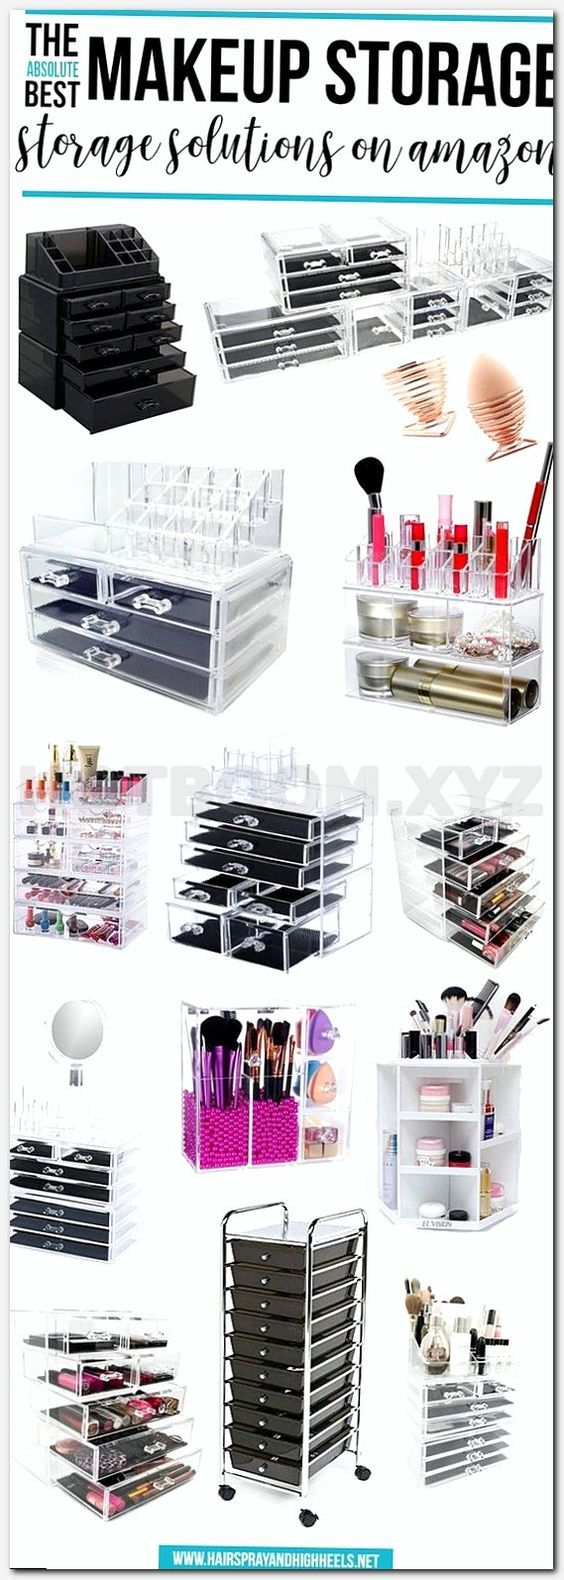 what makes up the universe, makeup turkce indir, normal makeup for daily, make up, new makeup looks 2017, makeup artist annual salary, all beauty store, videos de makeup, makeup tutorial for eyeshadow, double lid eye makeup, how to do makeup for beginners http://amzn.to/2tGTF0k